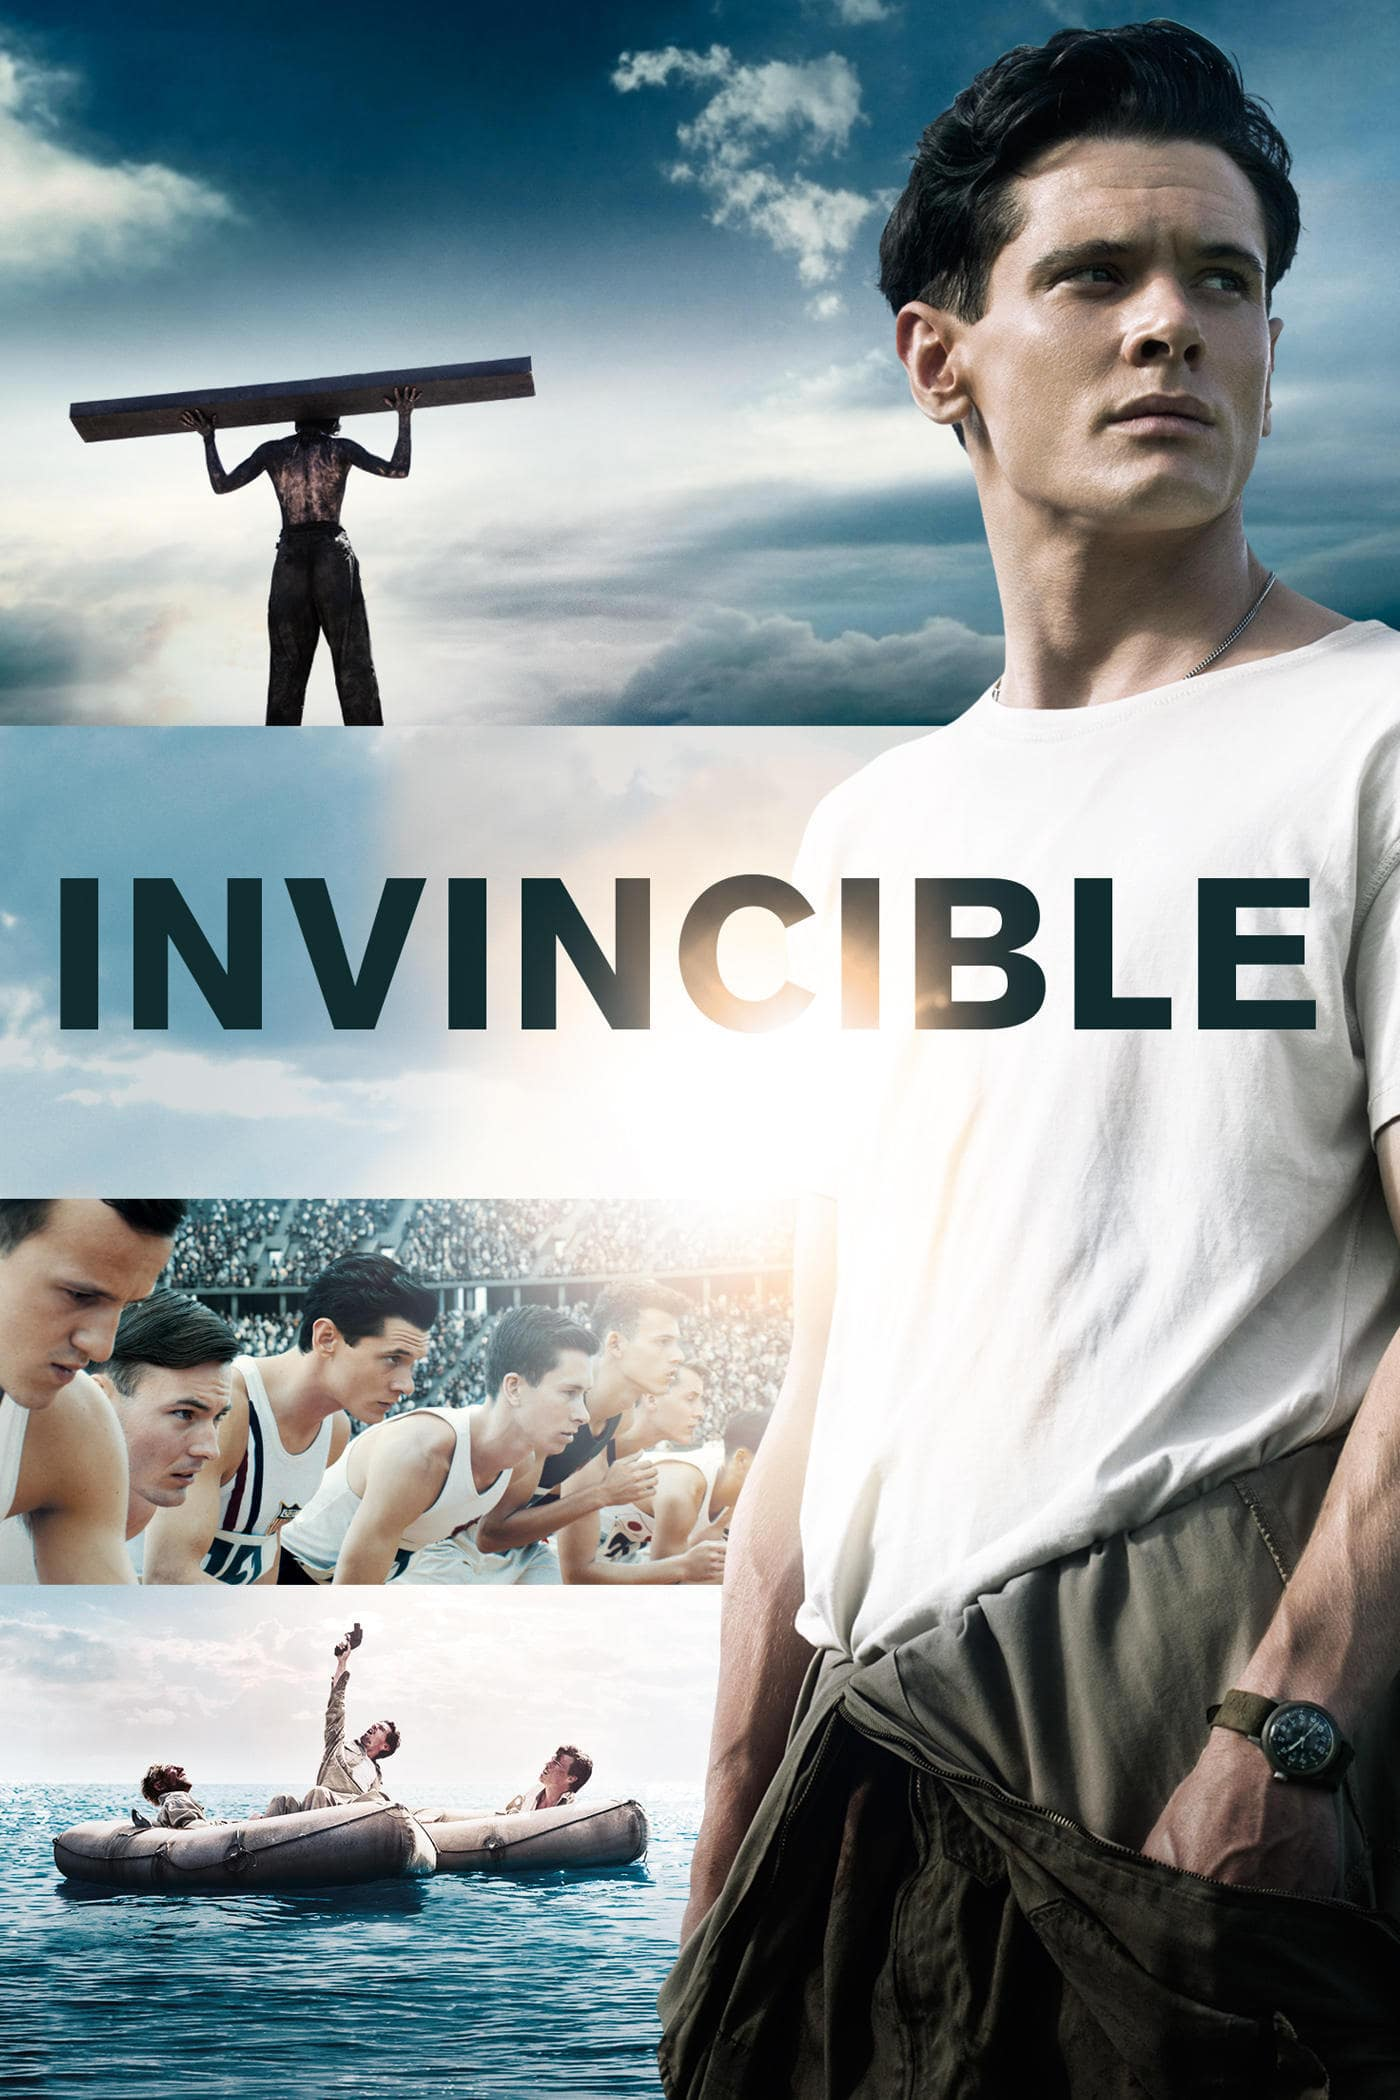 Regarder Invincible en streaming gratuit